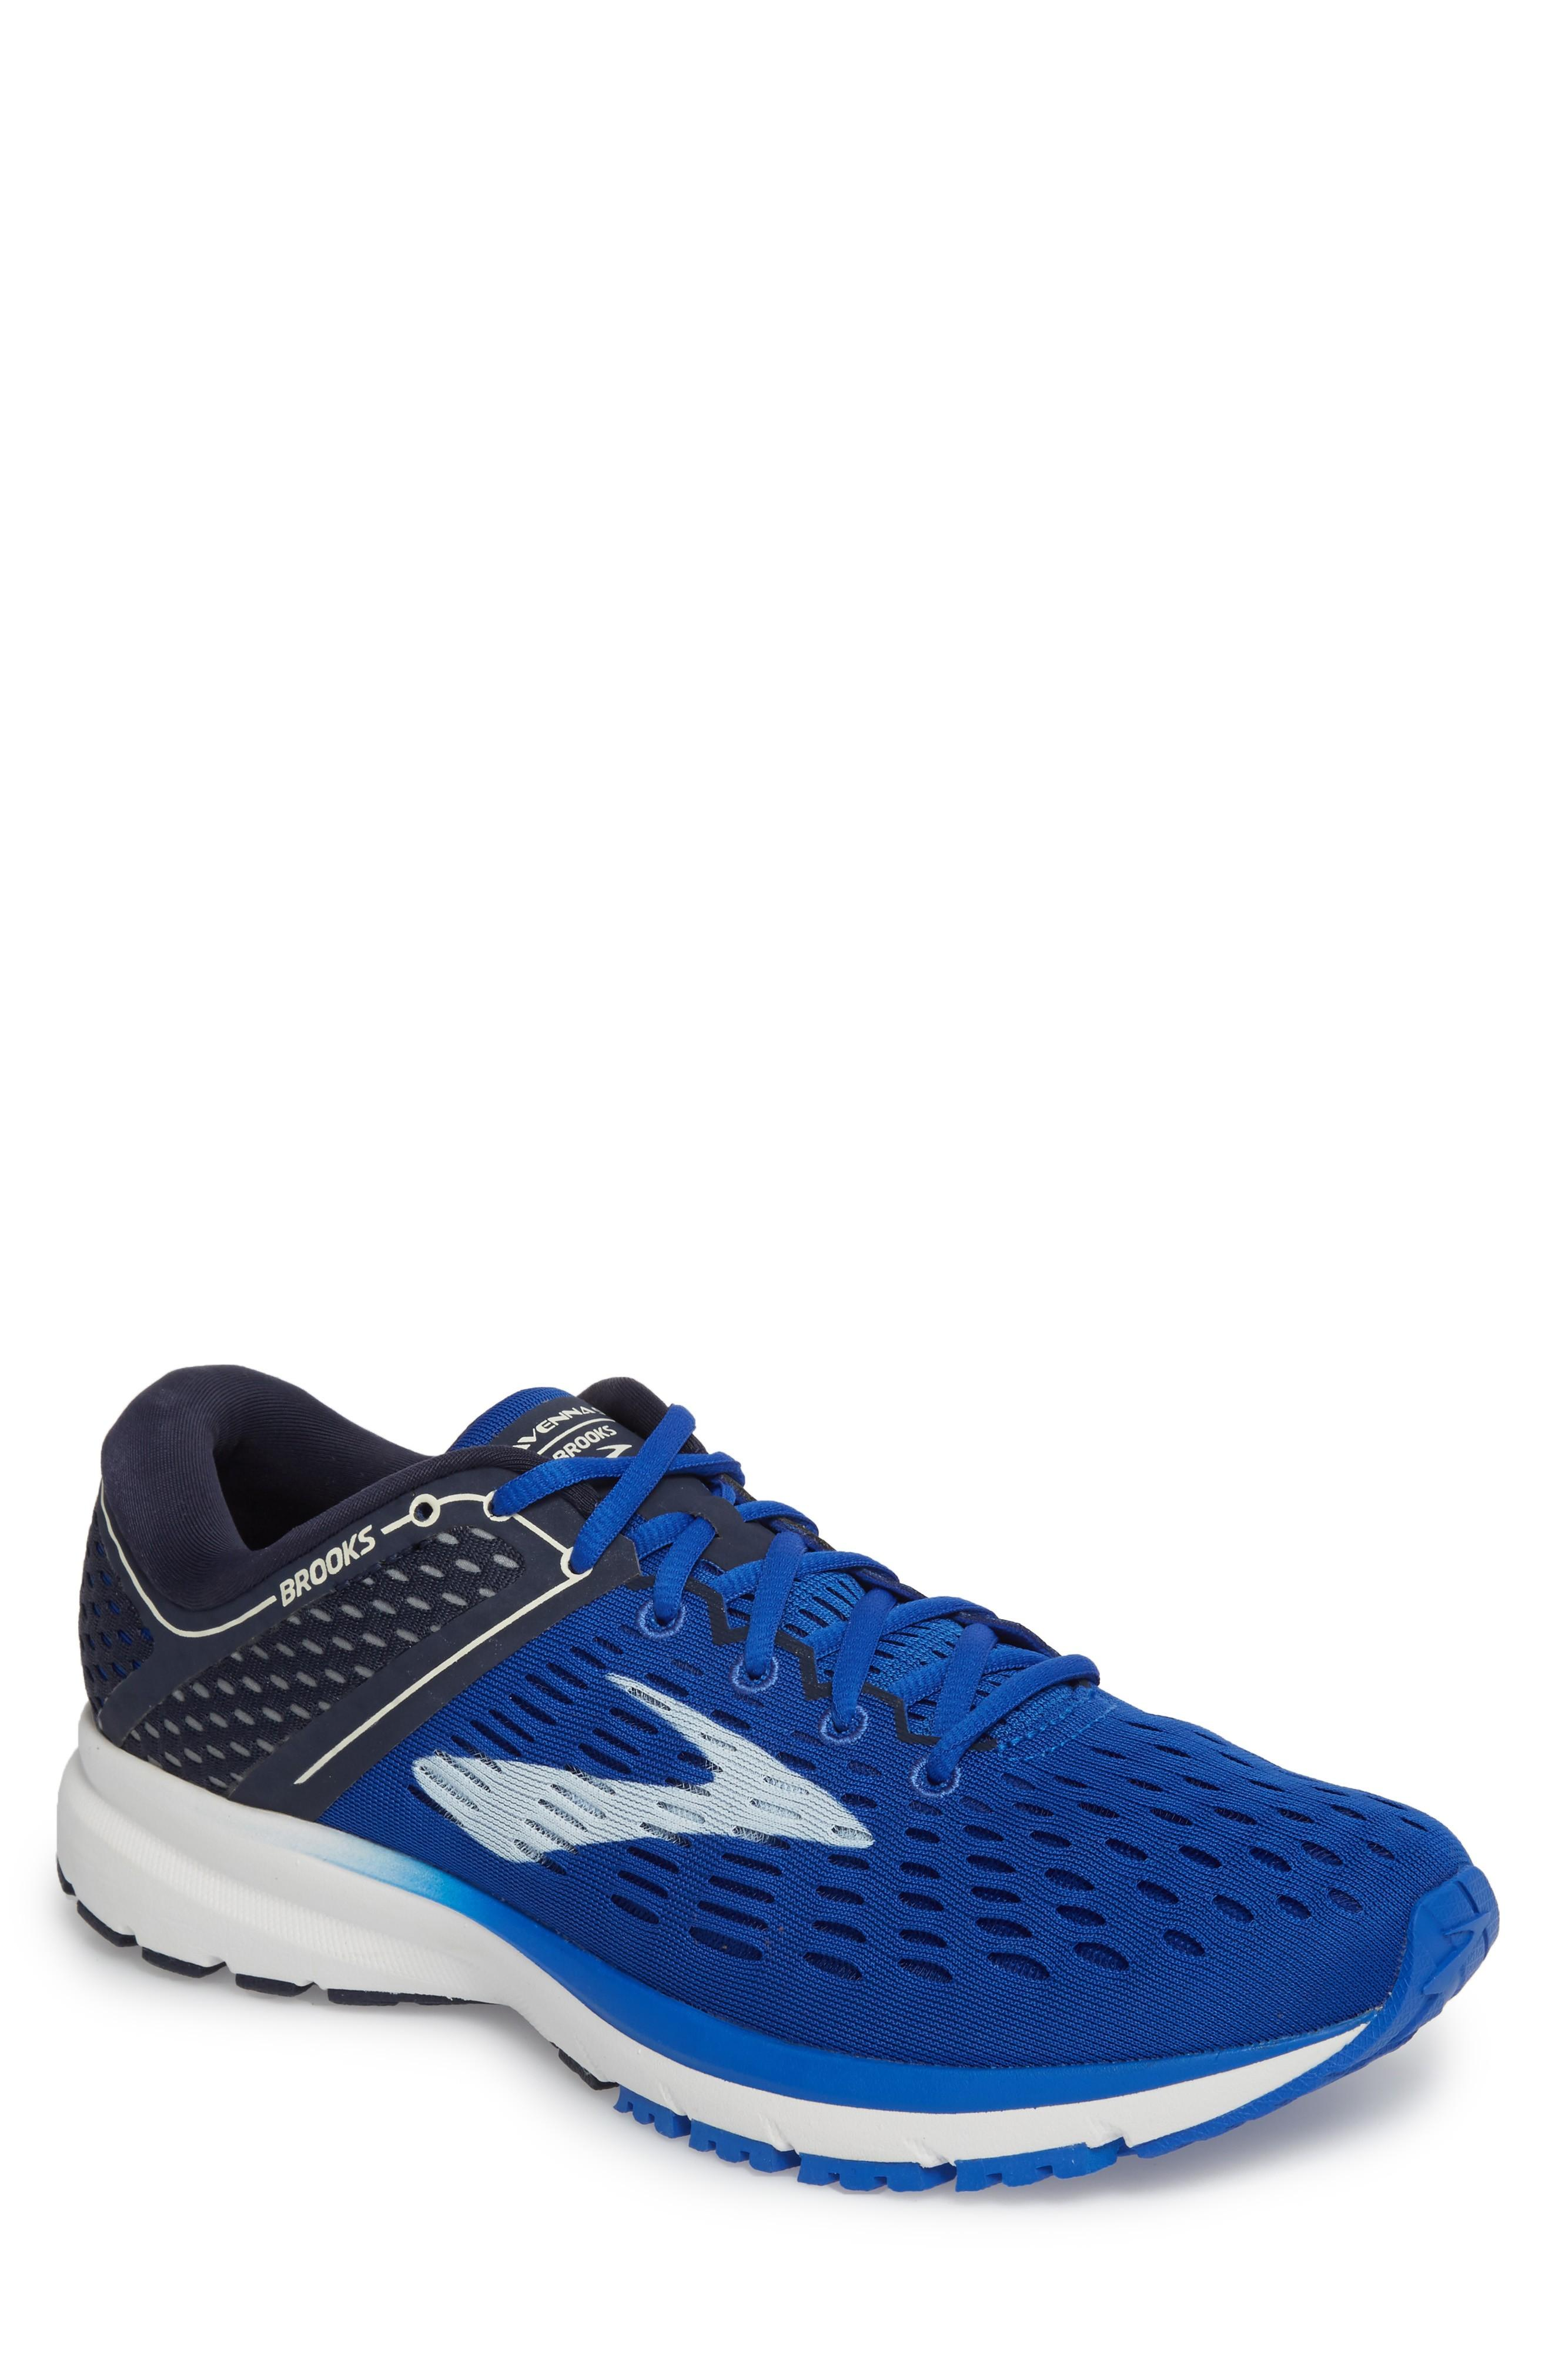 4c8a35b0aabbe Brooks Ravenna 9 Running Shoe In Blue  Navy  White